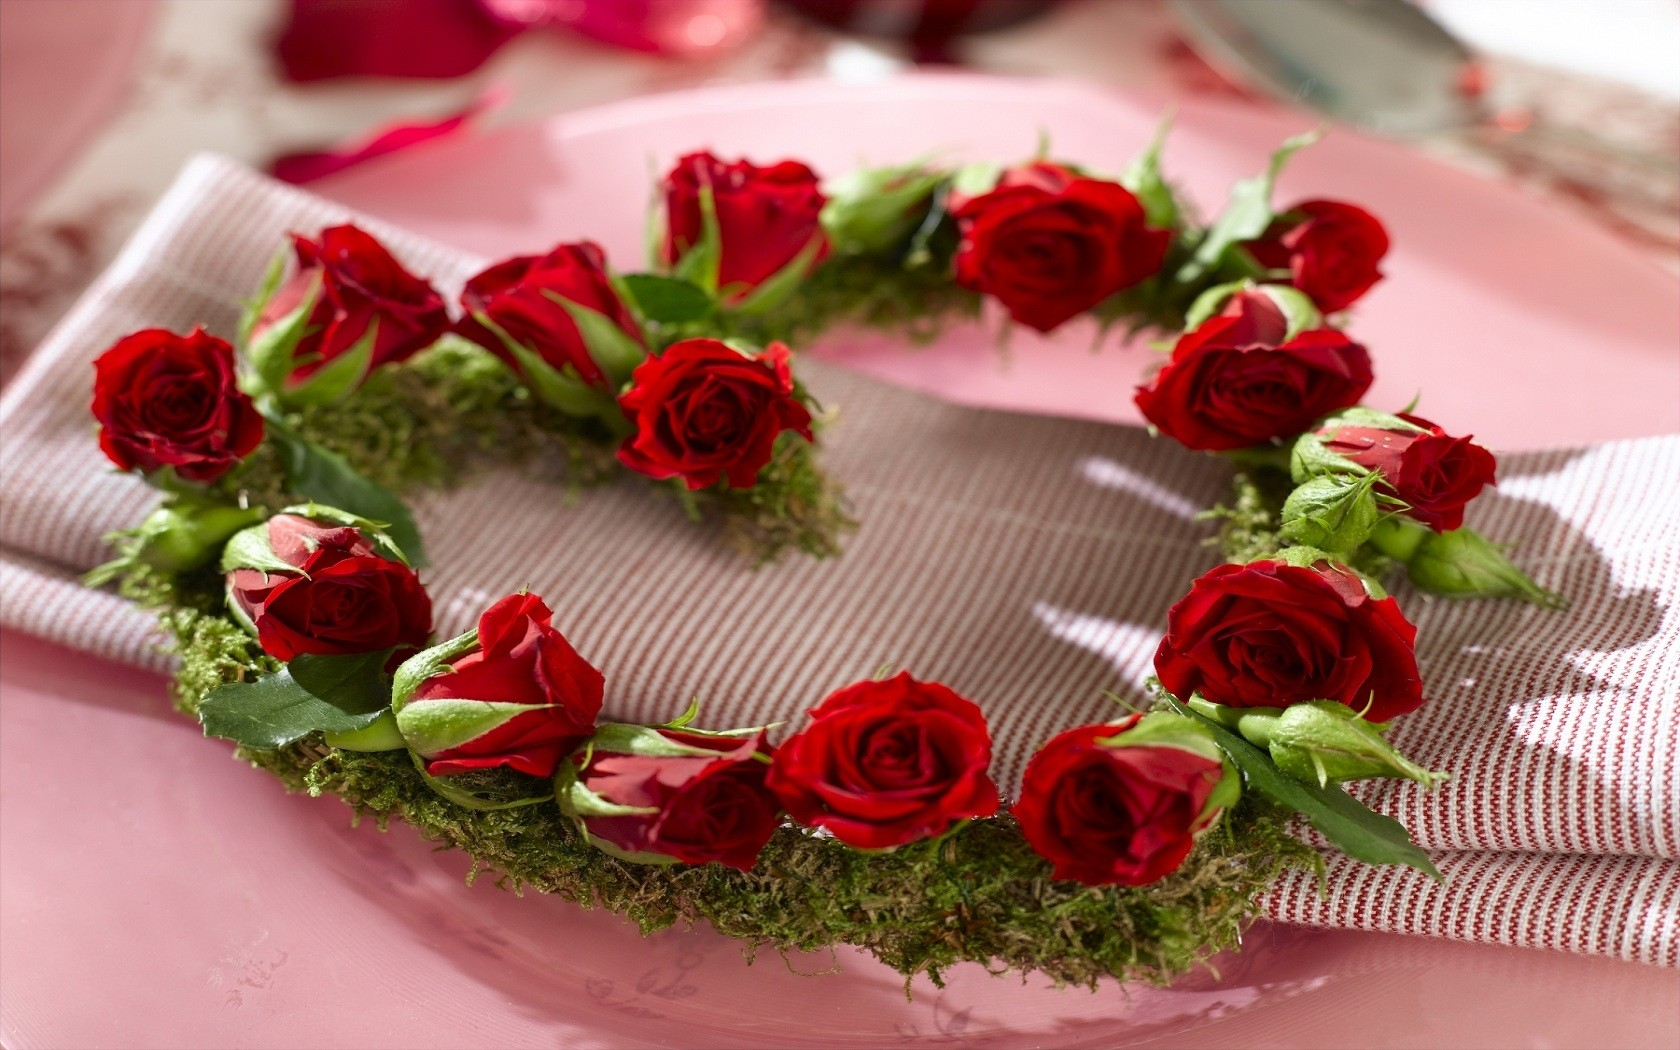 Happy valentines kenyapoa lovely red flowers photography valentine day rose heart roses wreath beautiful flower wallpaper download desktop izmirmasajfo Image collections